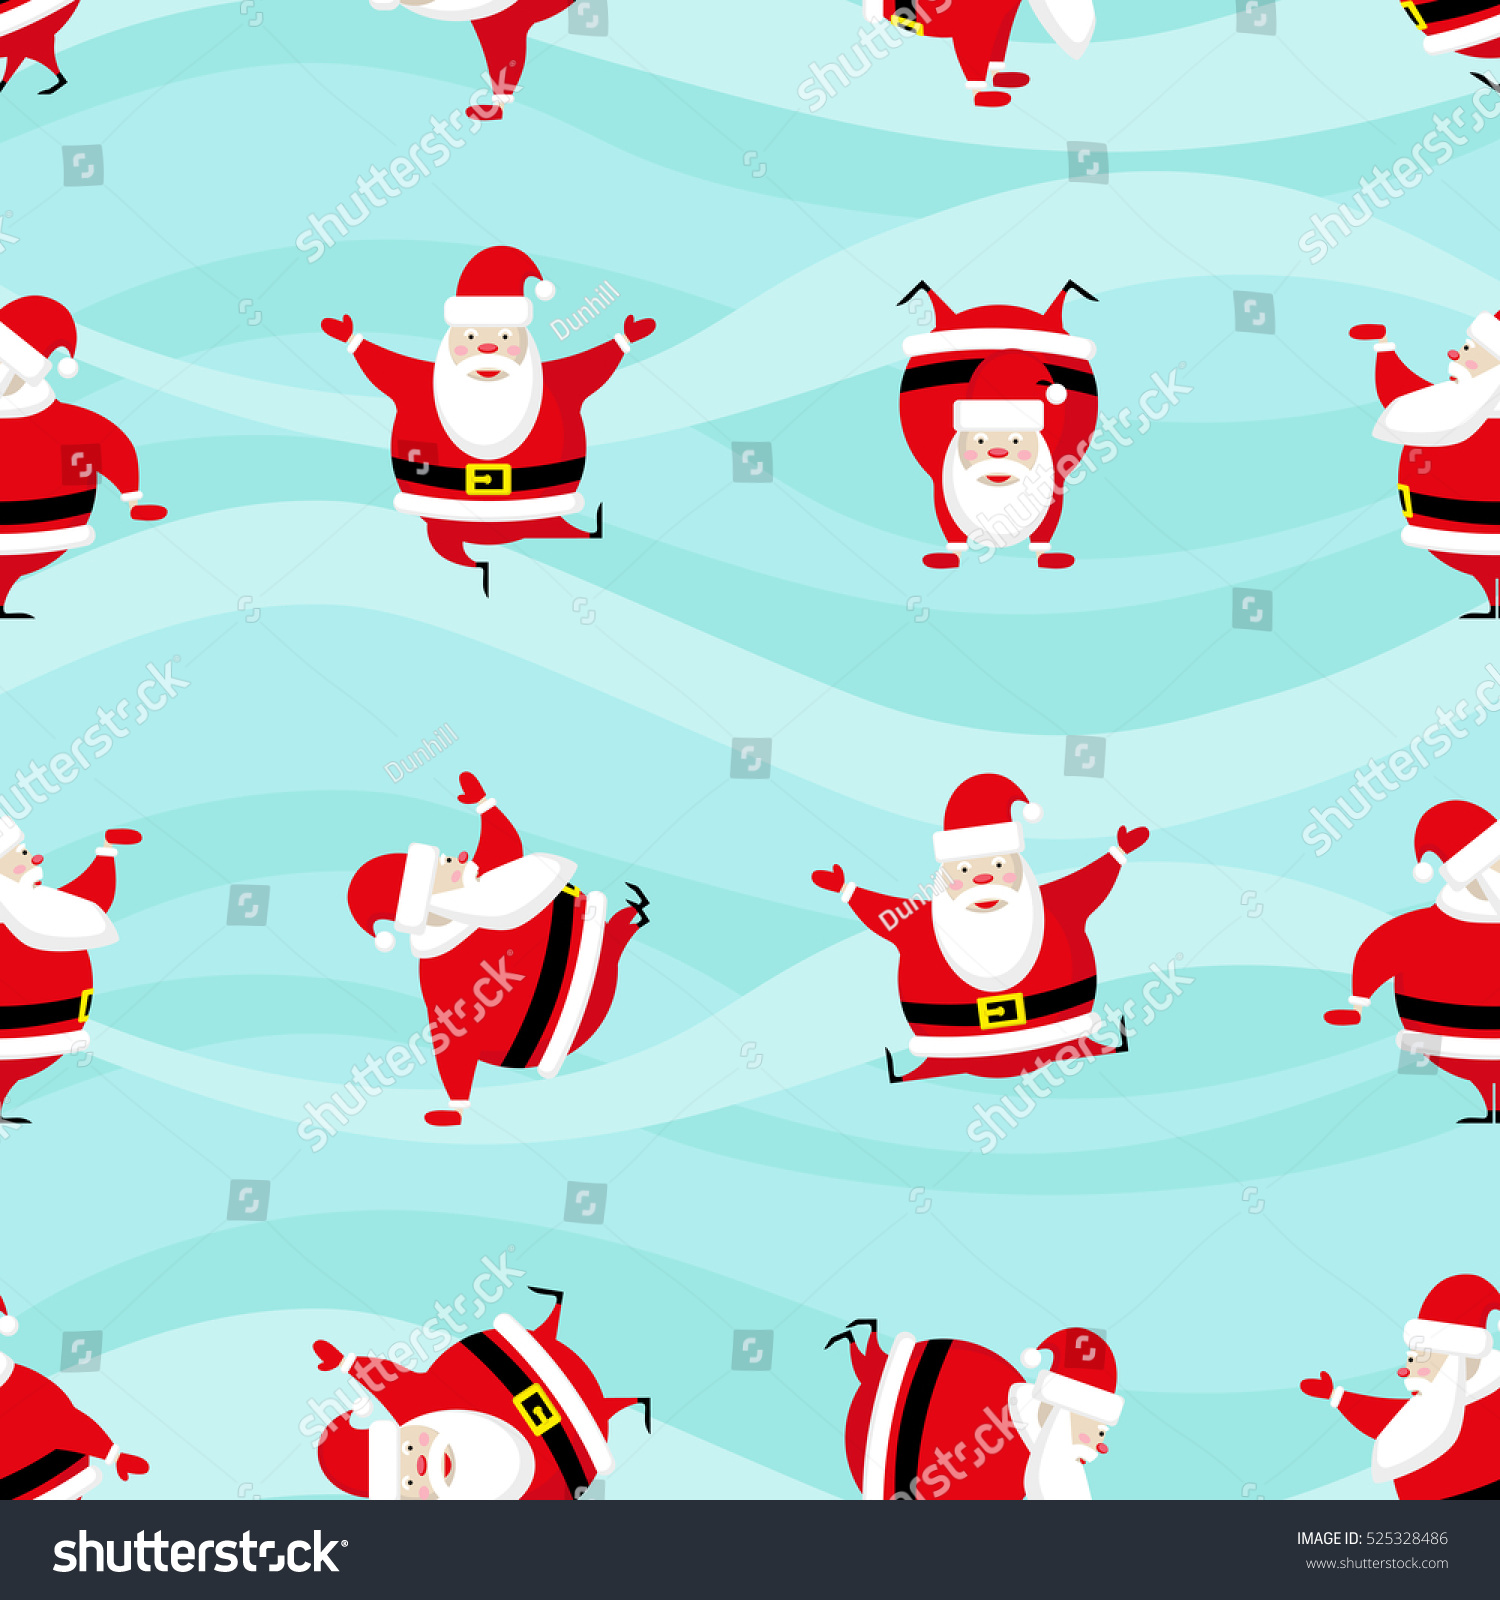 Seamless Happy New Year And Merry Christmas Background Dancing Funny Santa Claus In Different Poses